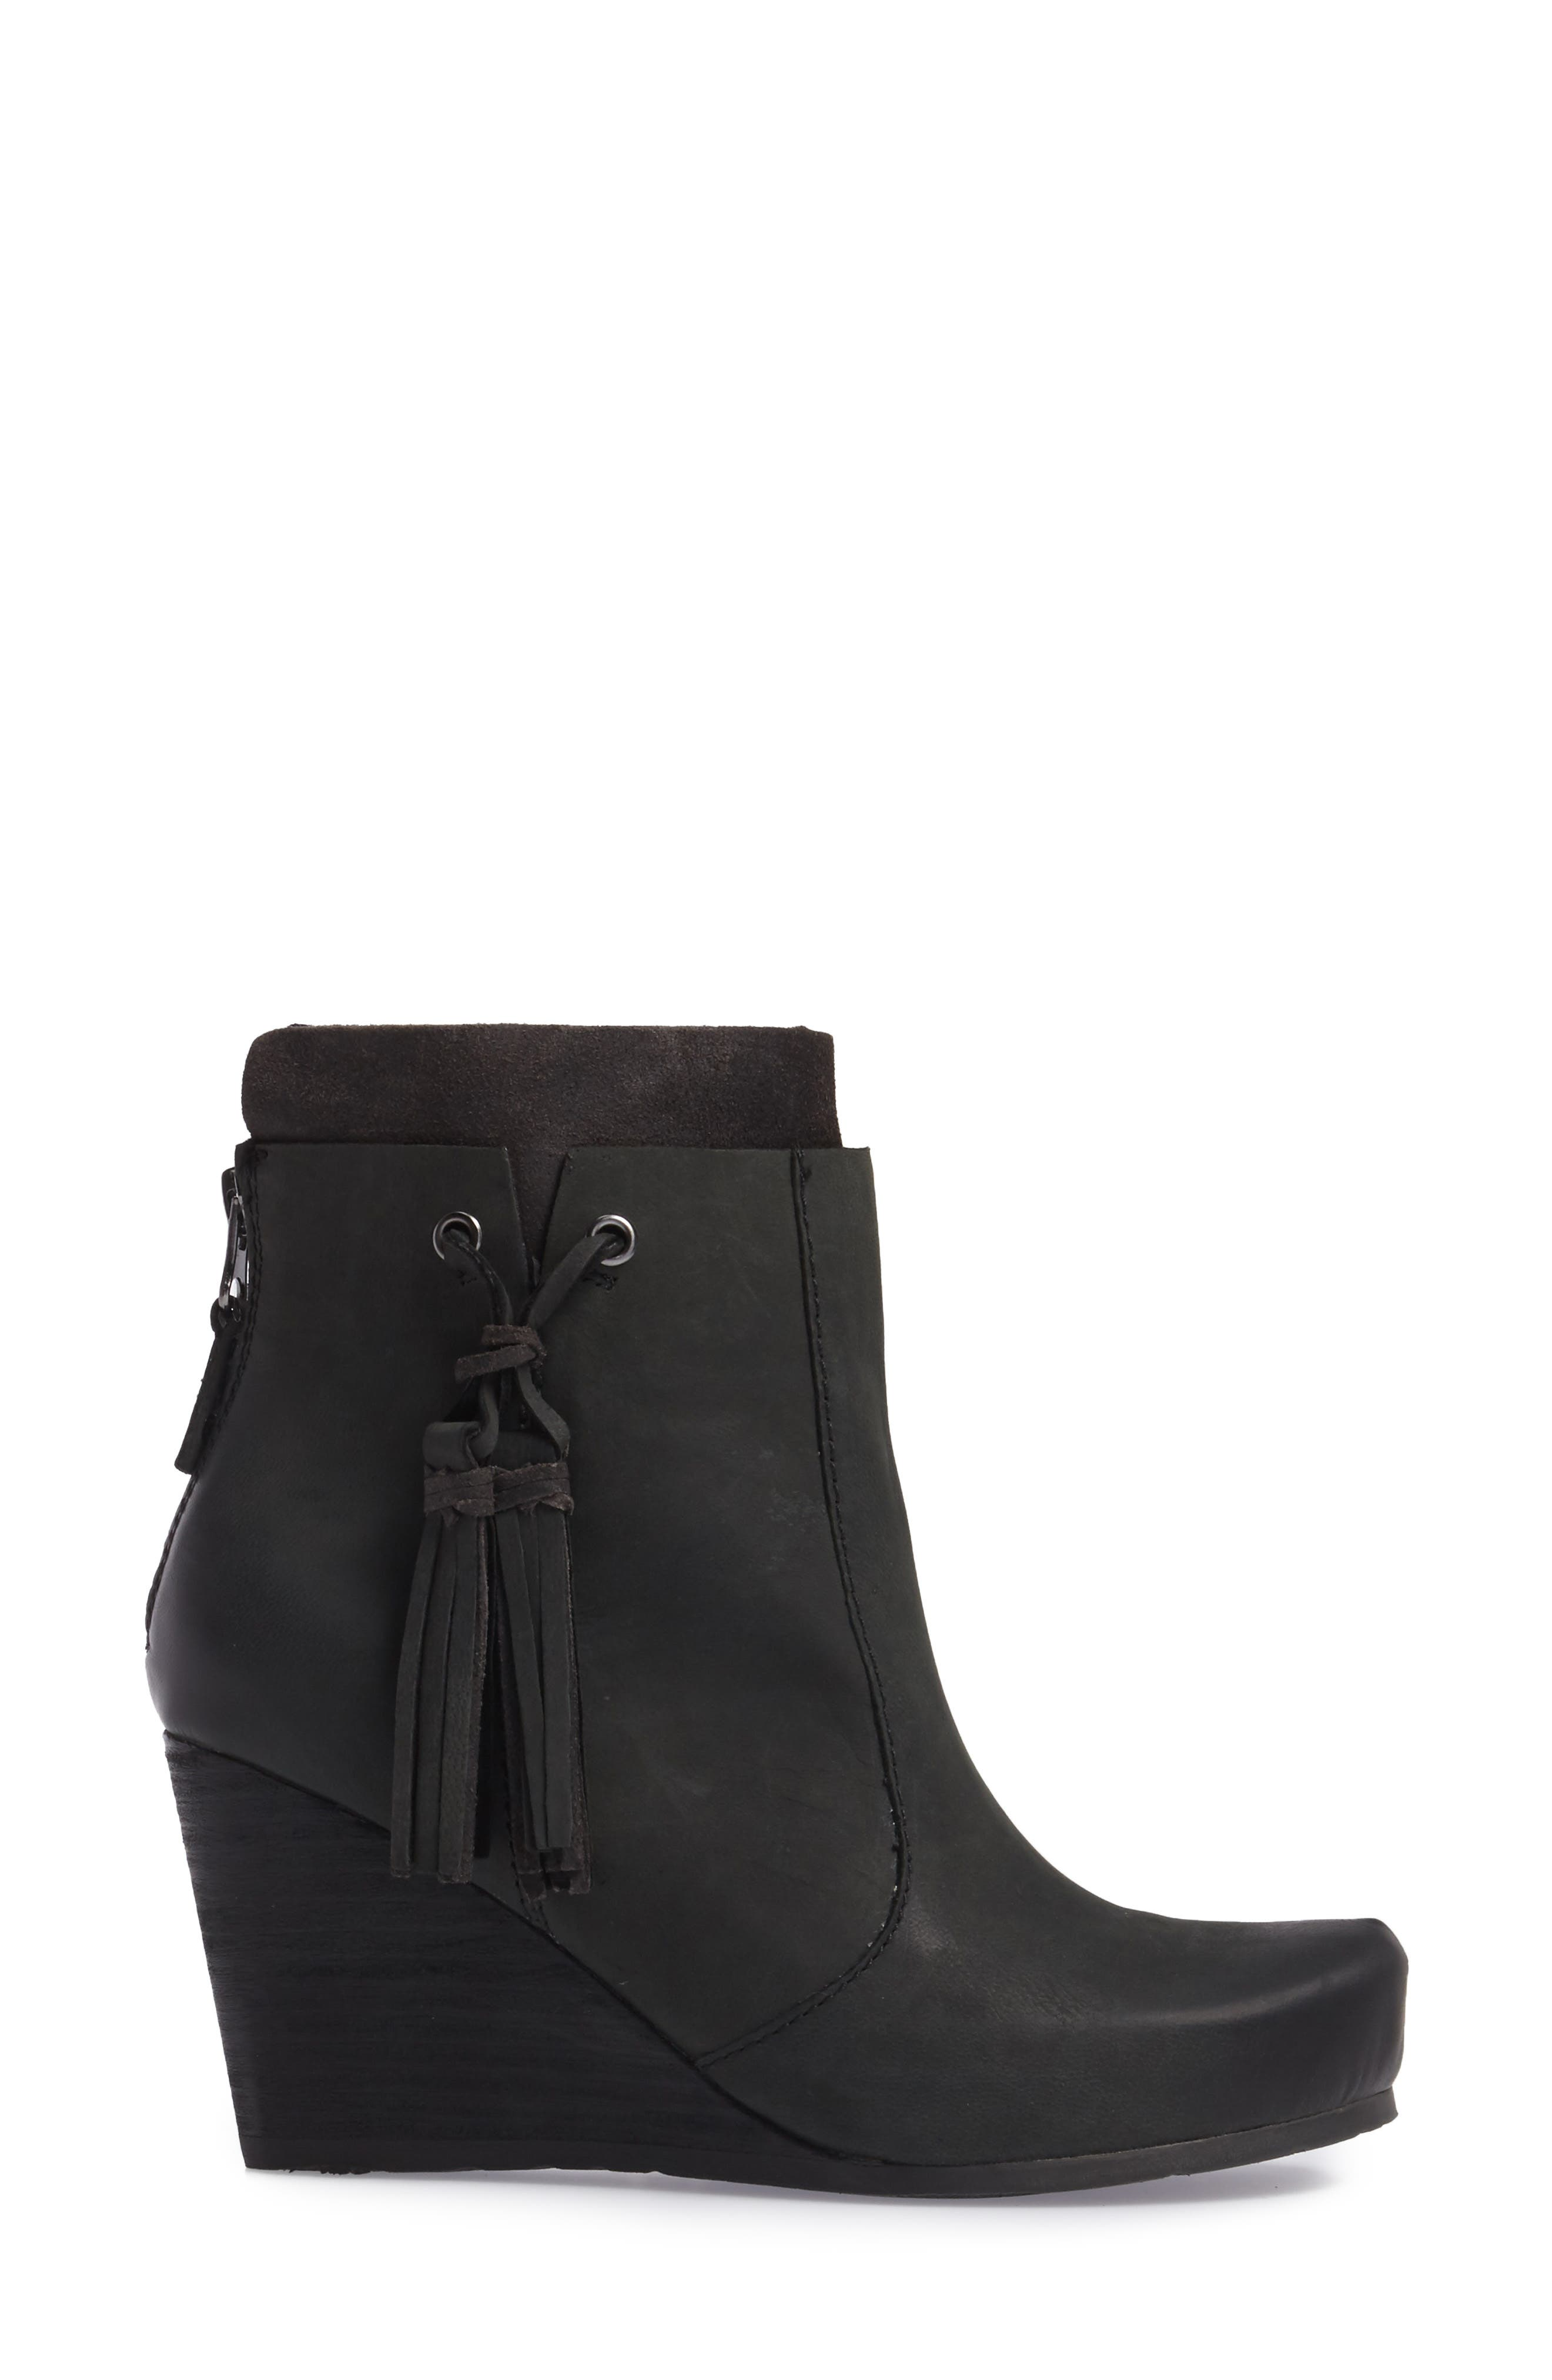 Vagary Wedge Bootie,                             Alternate thumbnail 3, color,                             BLACK LEATHER